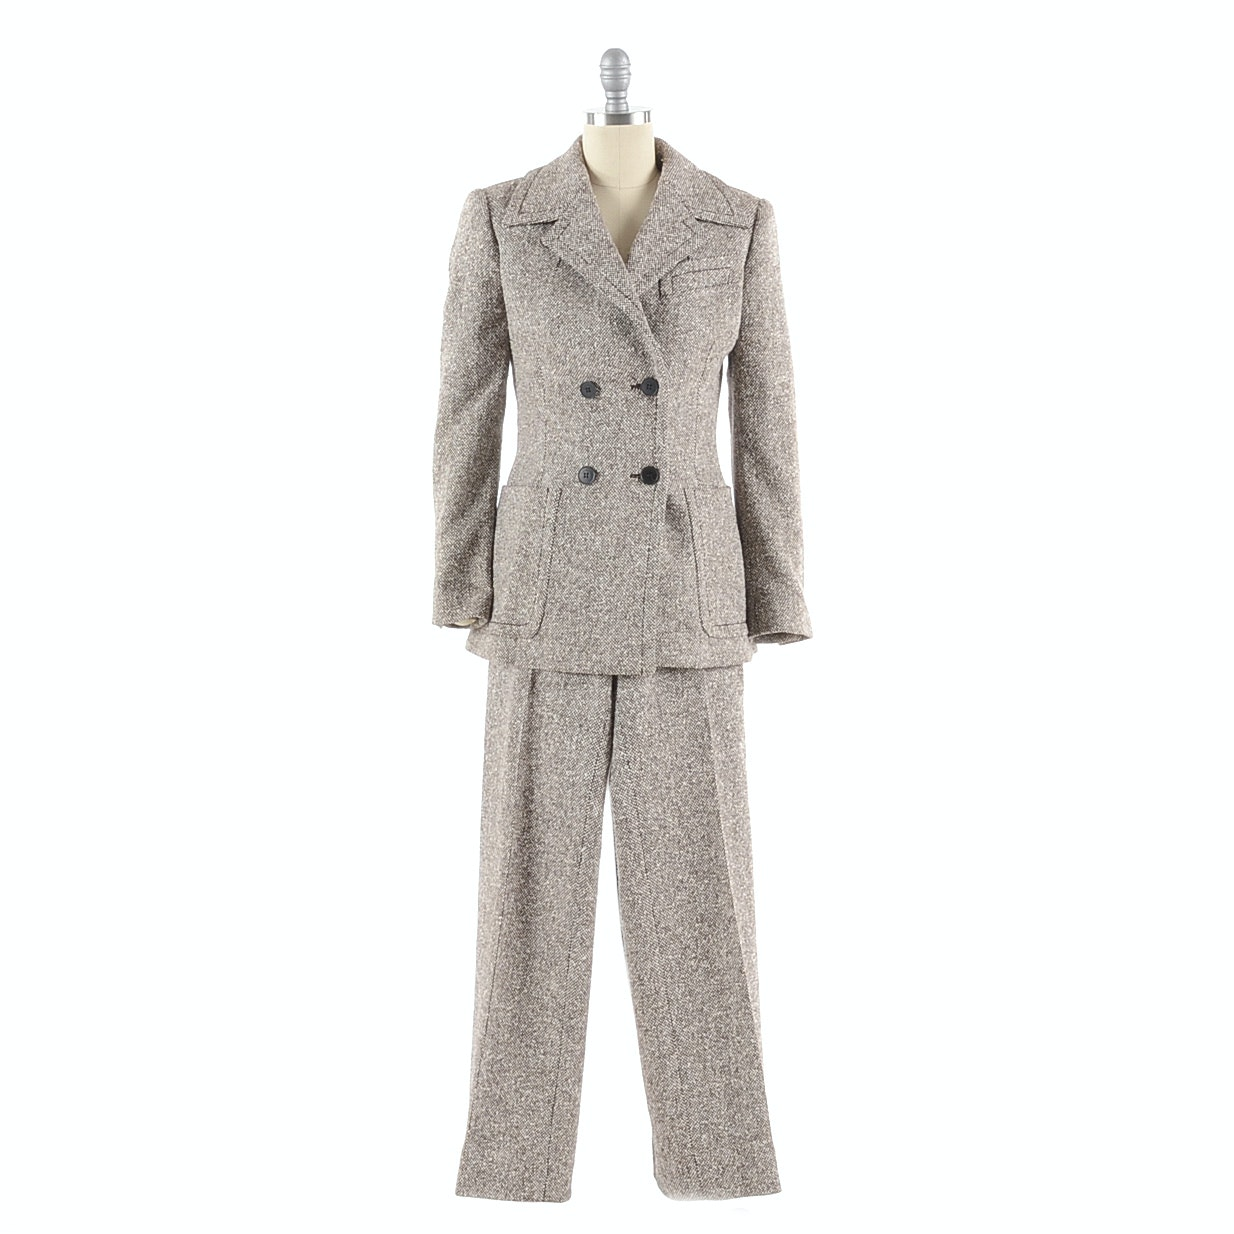 Samsonite Brown and Ivory Tweed Silk/Wool Blend Suit